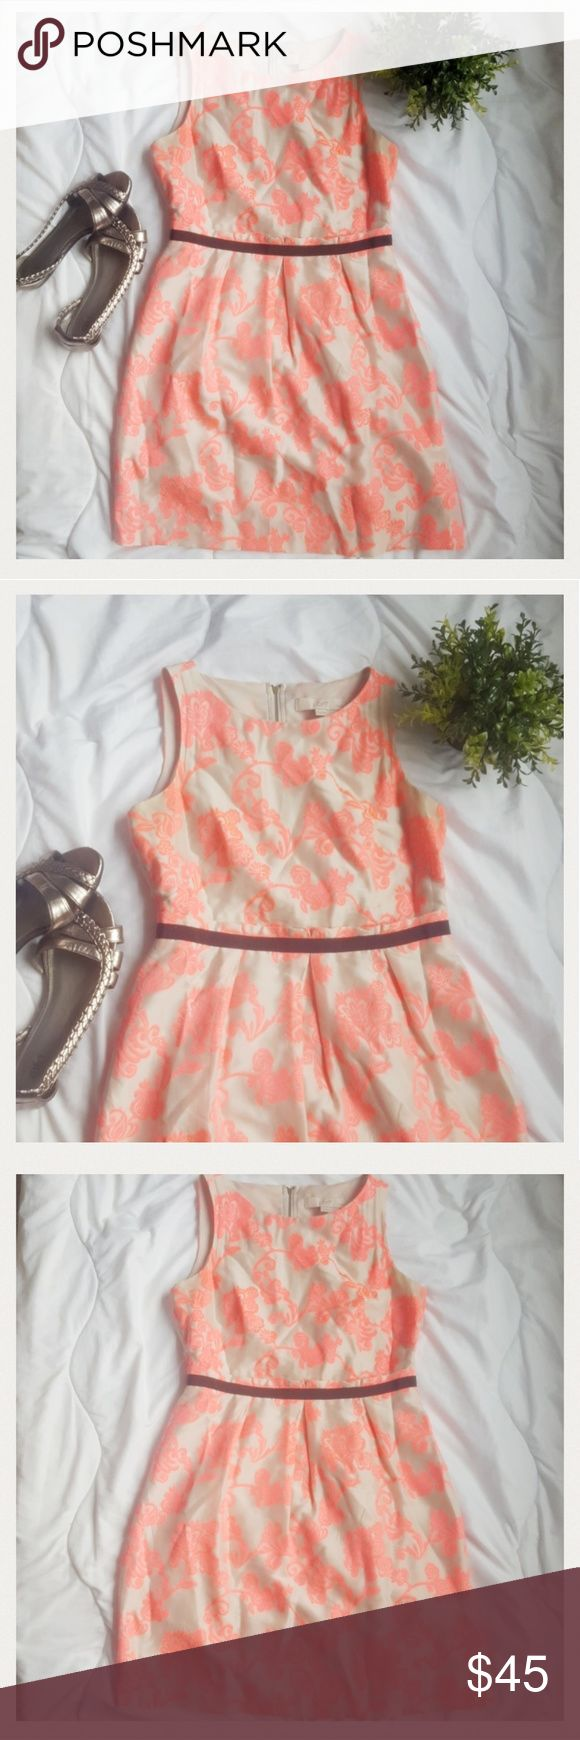 Beautiful LOFT Dress!! Stunning nude and hot pink colored summer dress by Ann Taylor LOFT. Gently used, but in good condition. Very soft and flirty. Comes from a smoke-free pet-free home. Fast shipping! NO TRADES! LOFT Dresses